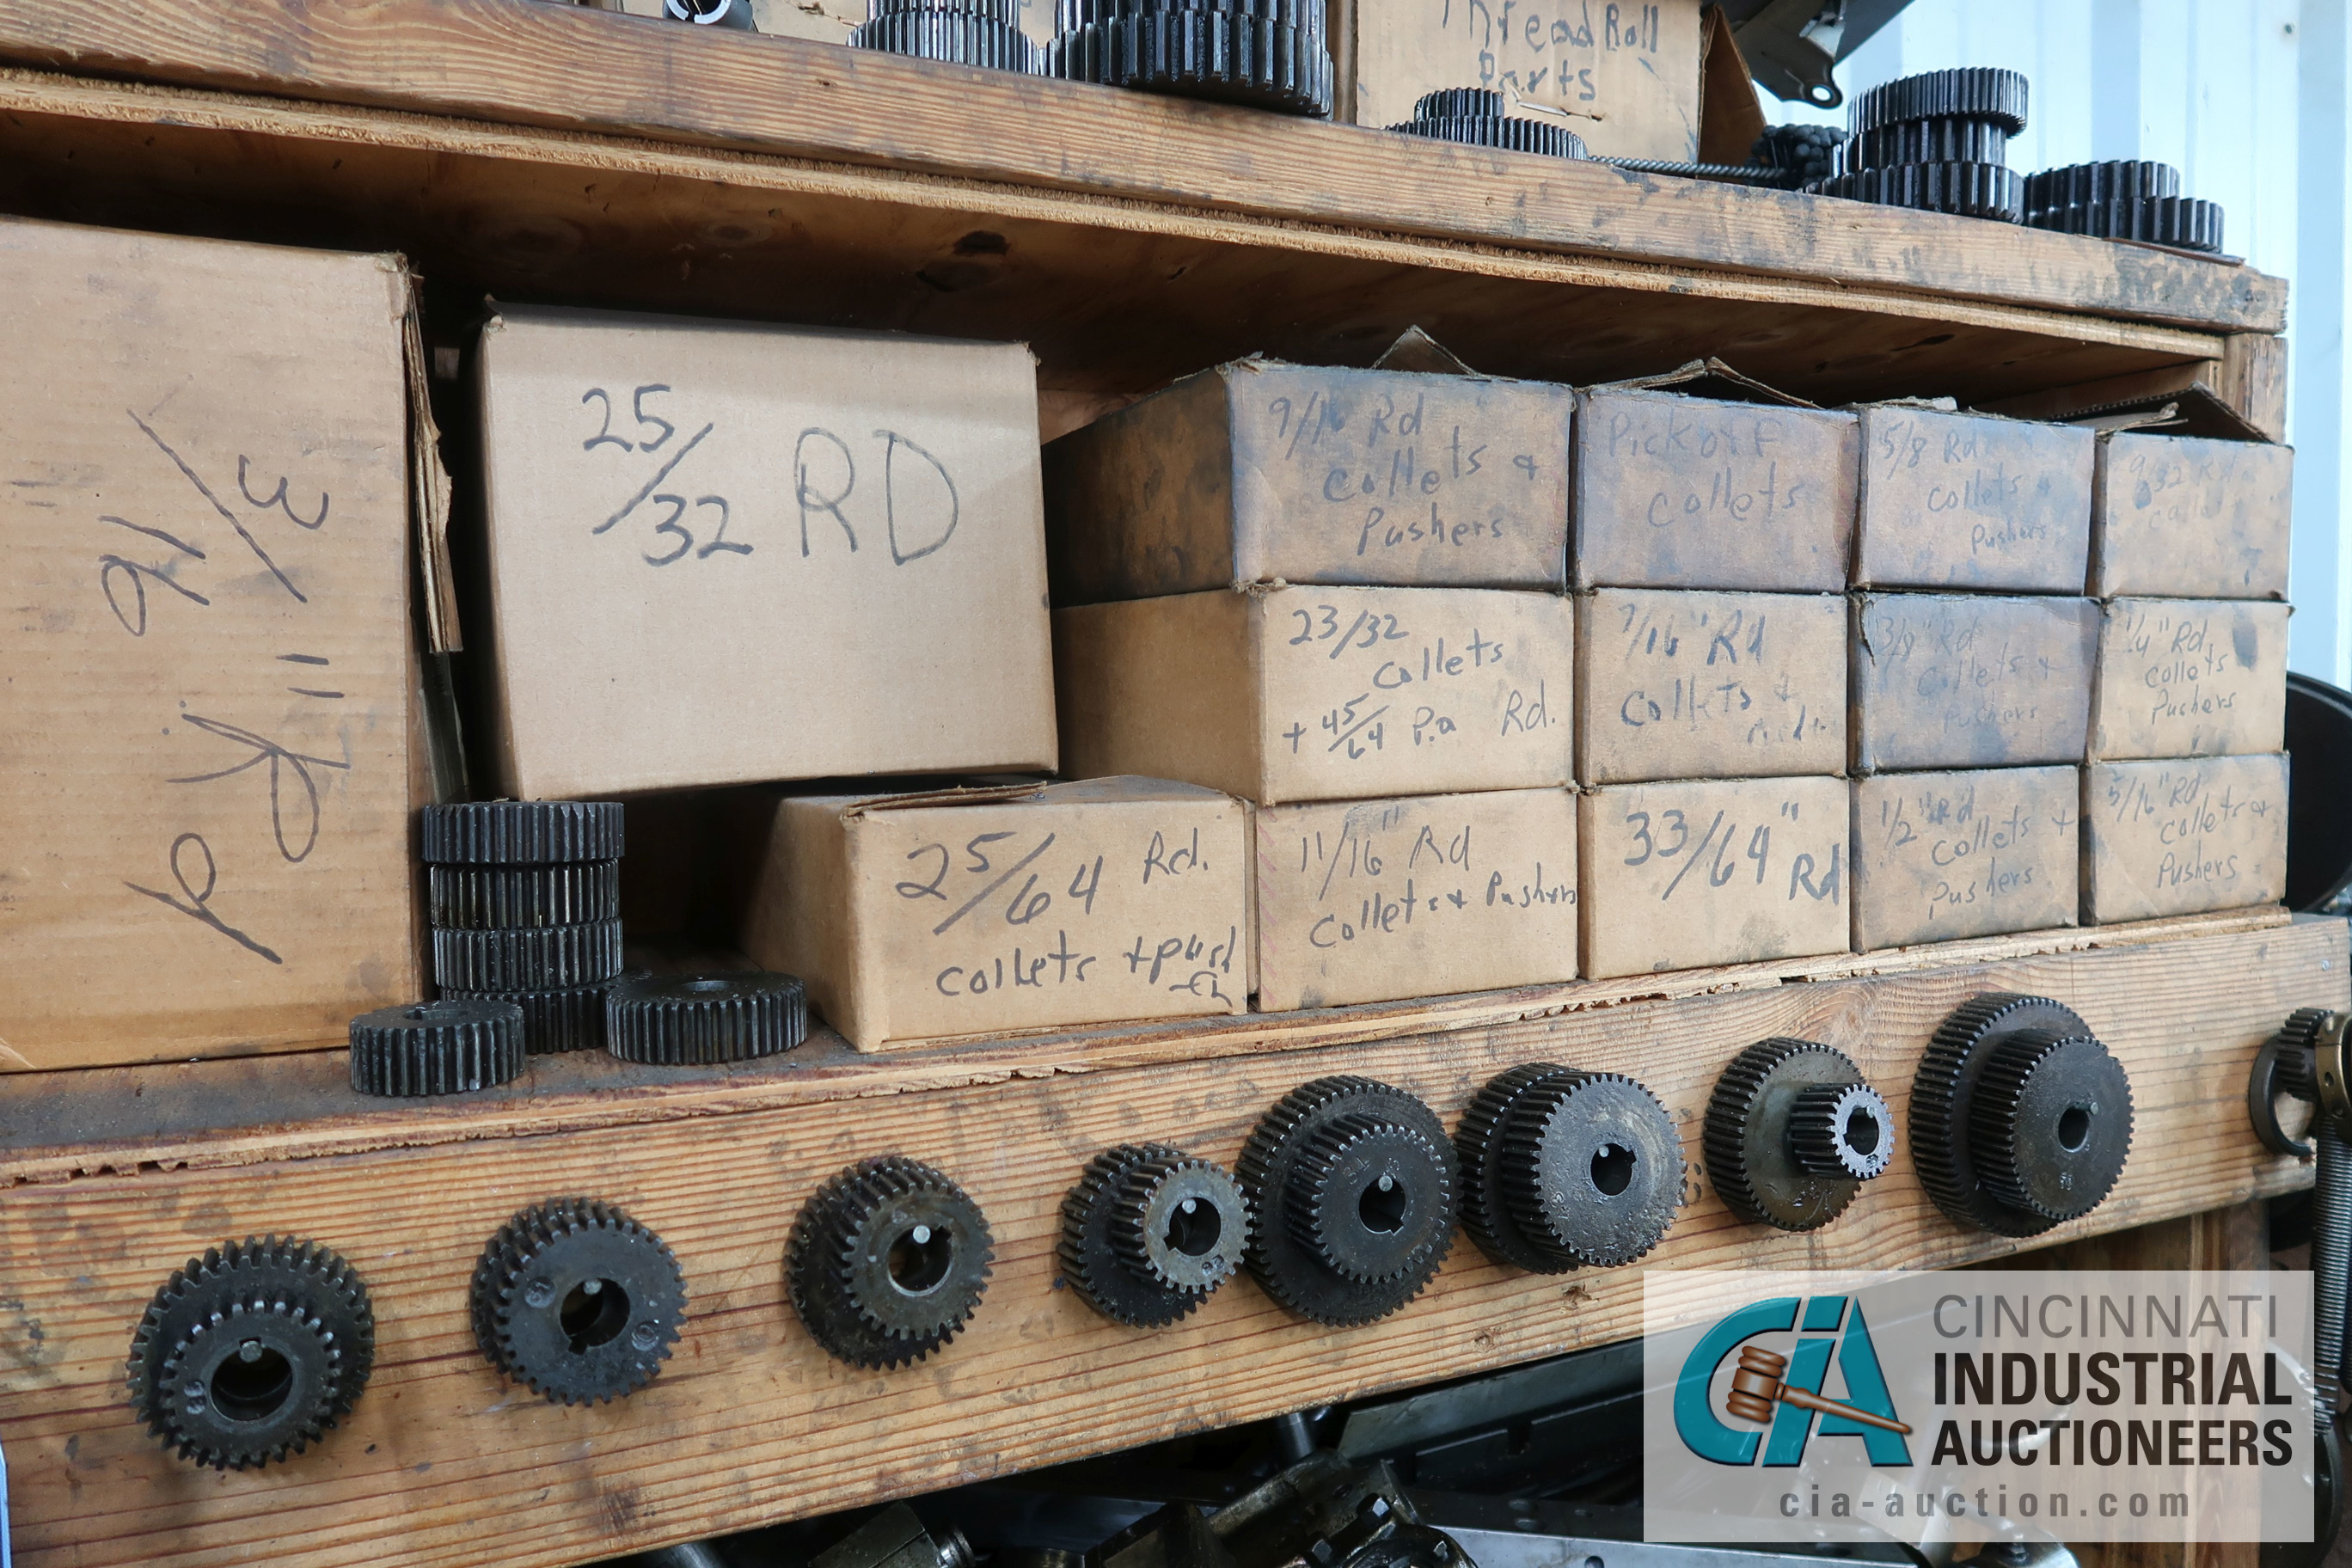 (LOT) LARGE ASSORTMENT MISCELLANEOUS DAVENPORT TOOLING, ATTACHMENTS, GEARS, CAMS AND OTHER RELATED - Image 5 of 21